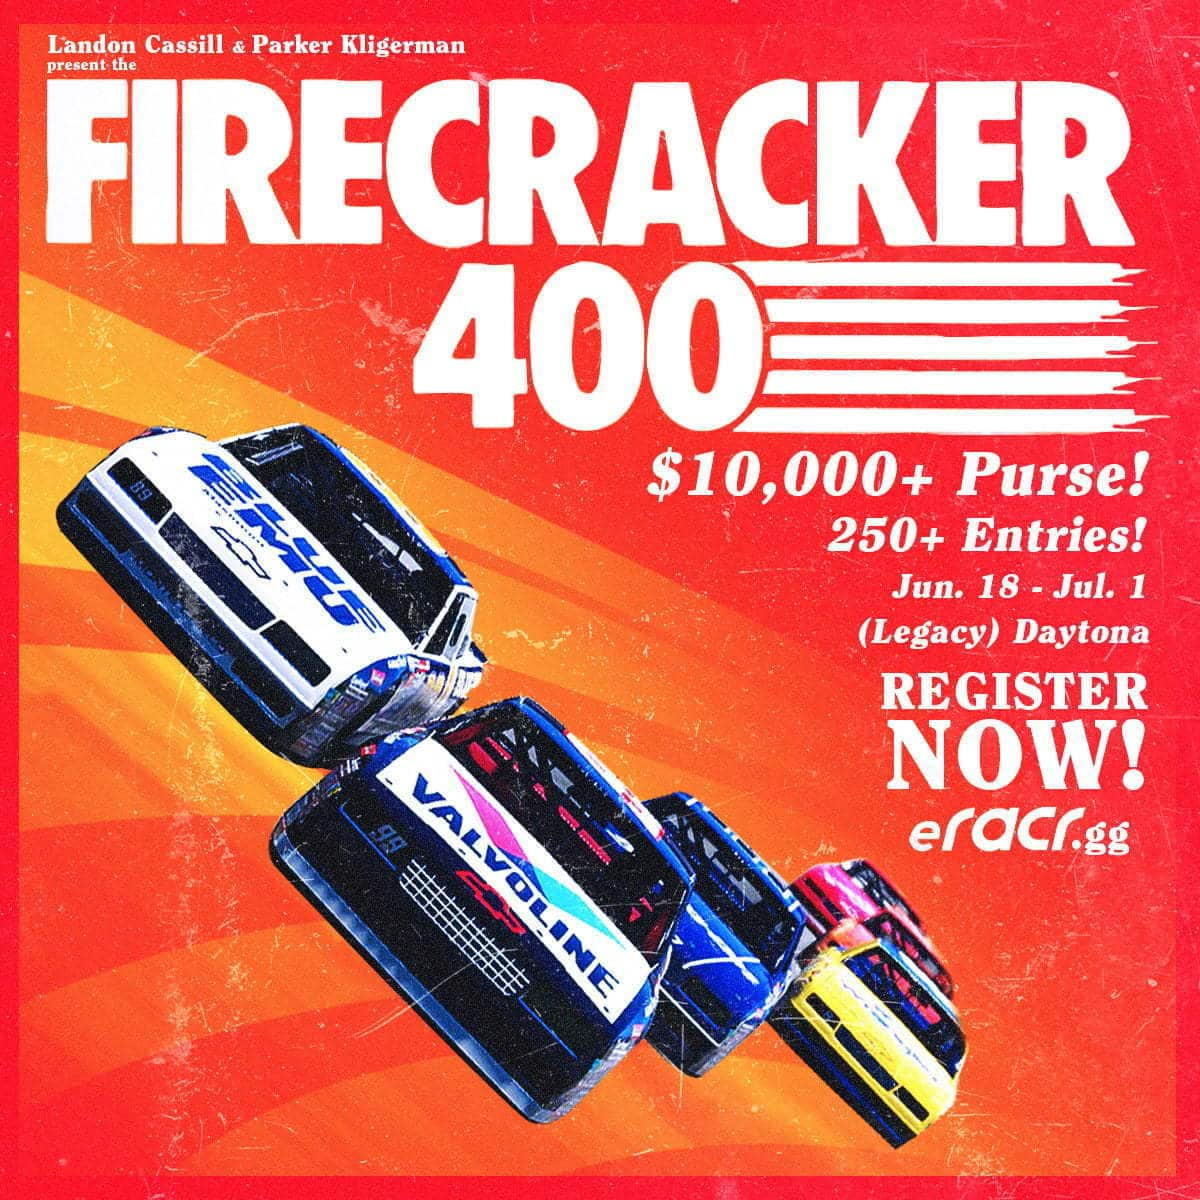 Landon Cassill and Parker Kligerman Present:  The Firecracker 400 – Entry Pool Increased